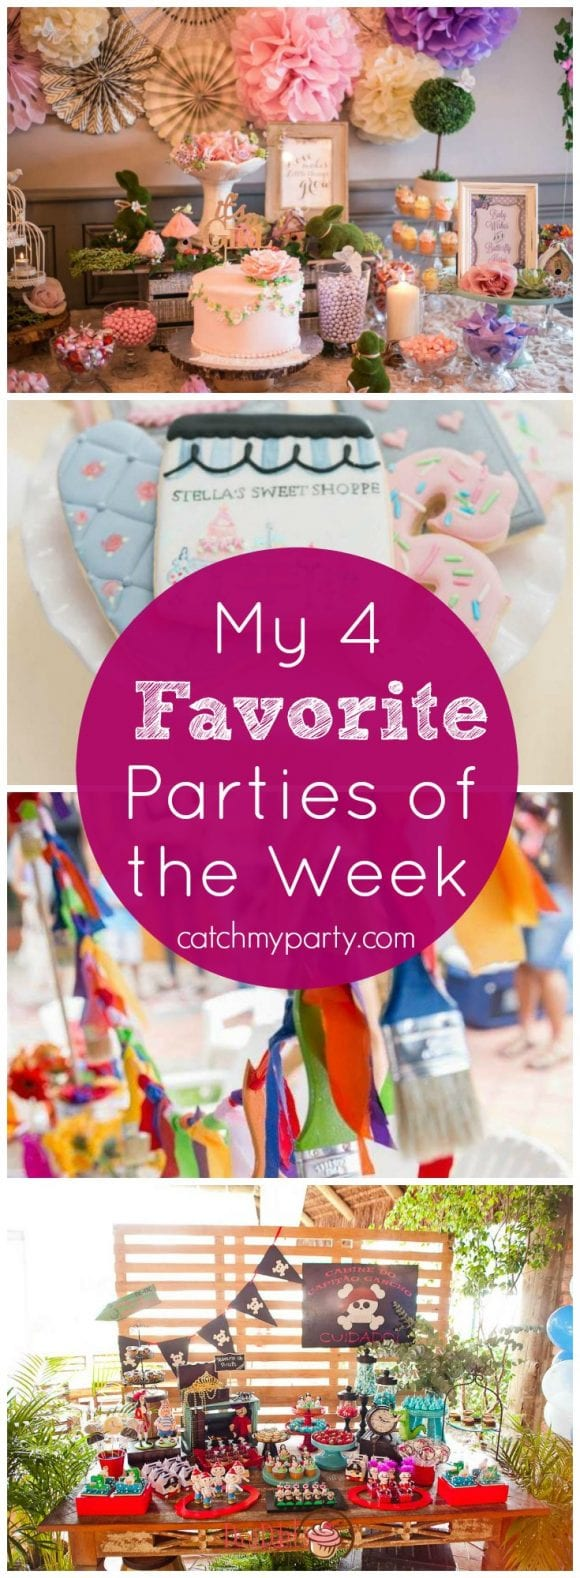 My 4 Favorite Parties of the Week include an enchanted garden baby shower, a sweet shoppe birthday, a painting party, and a Peter Pan birthday! | Catchmyparty.com